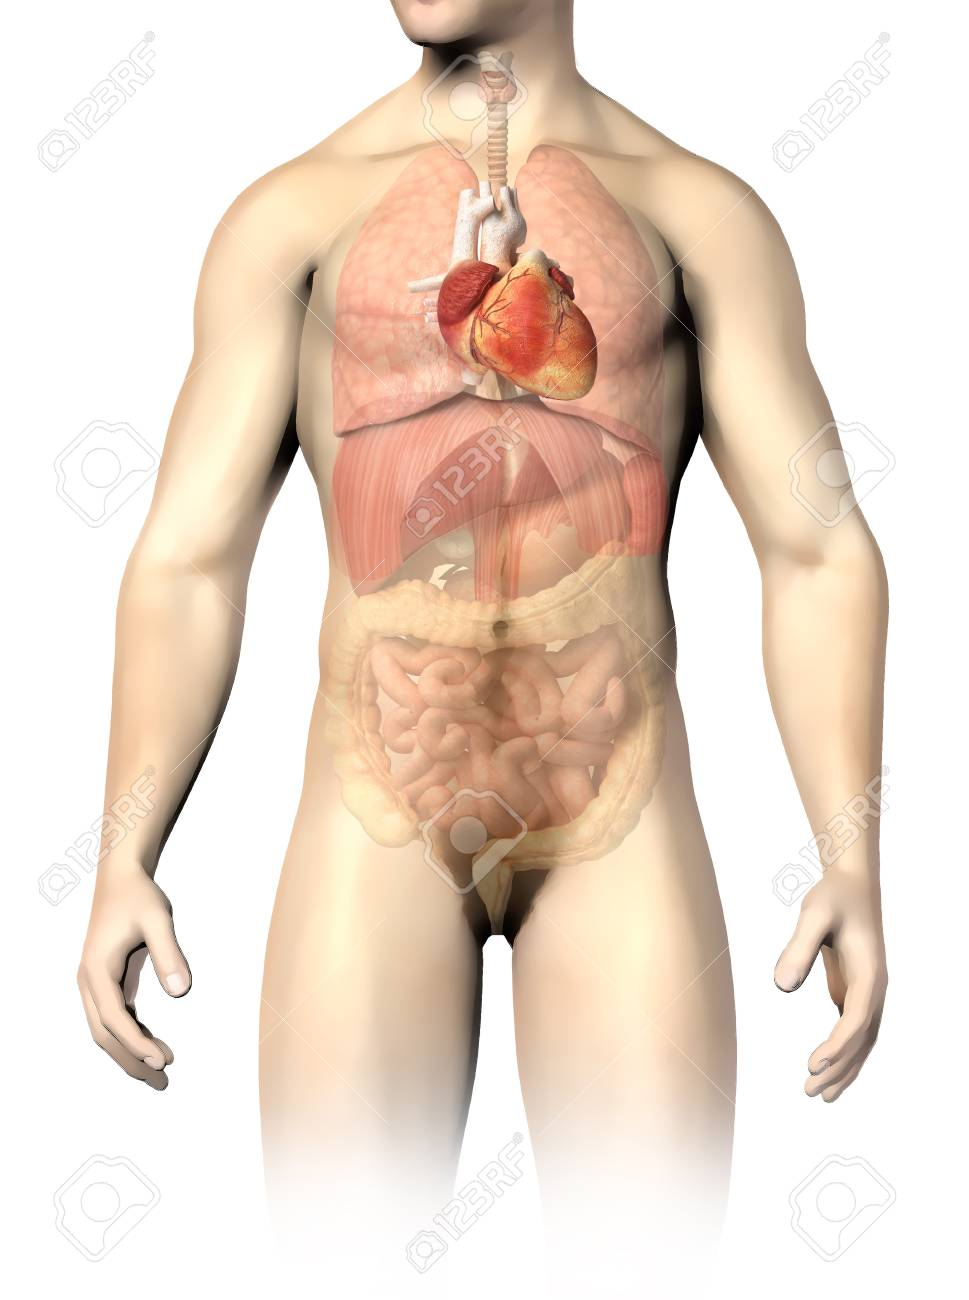 Male Anatomy Of Internal Organs, With Heart Highlighted And Rest ...